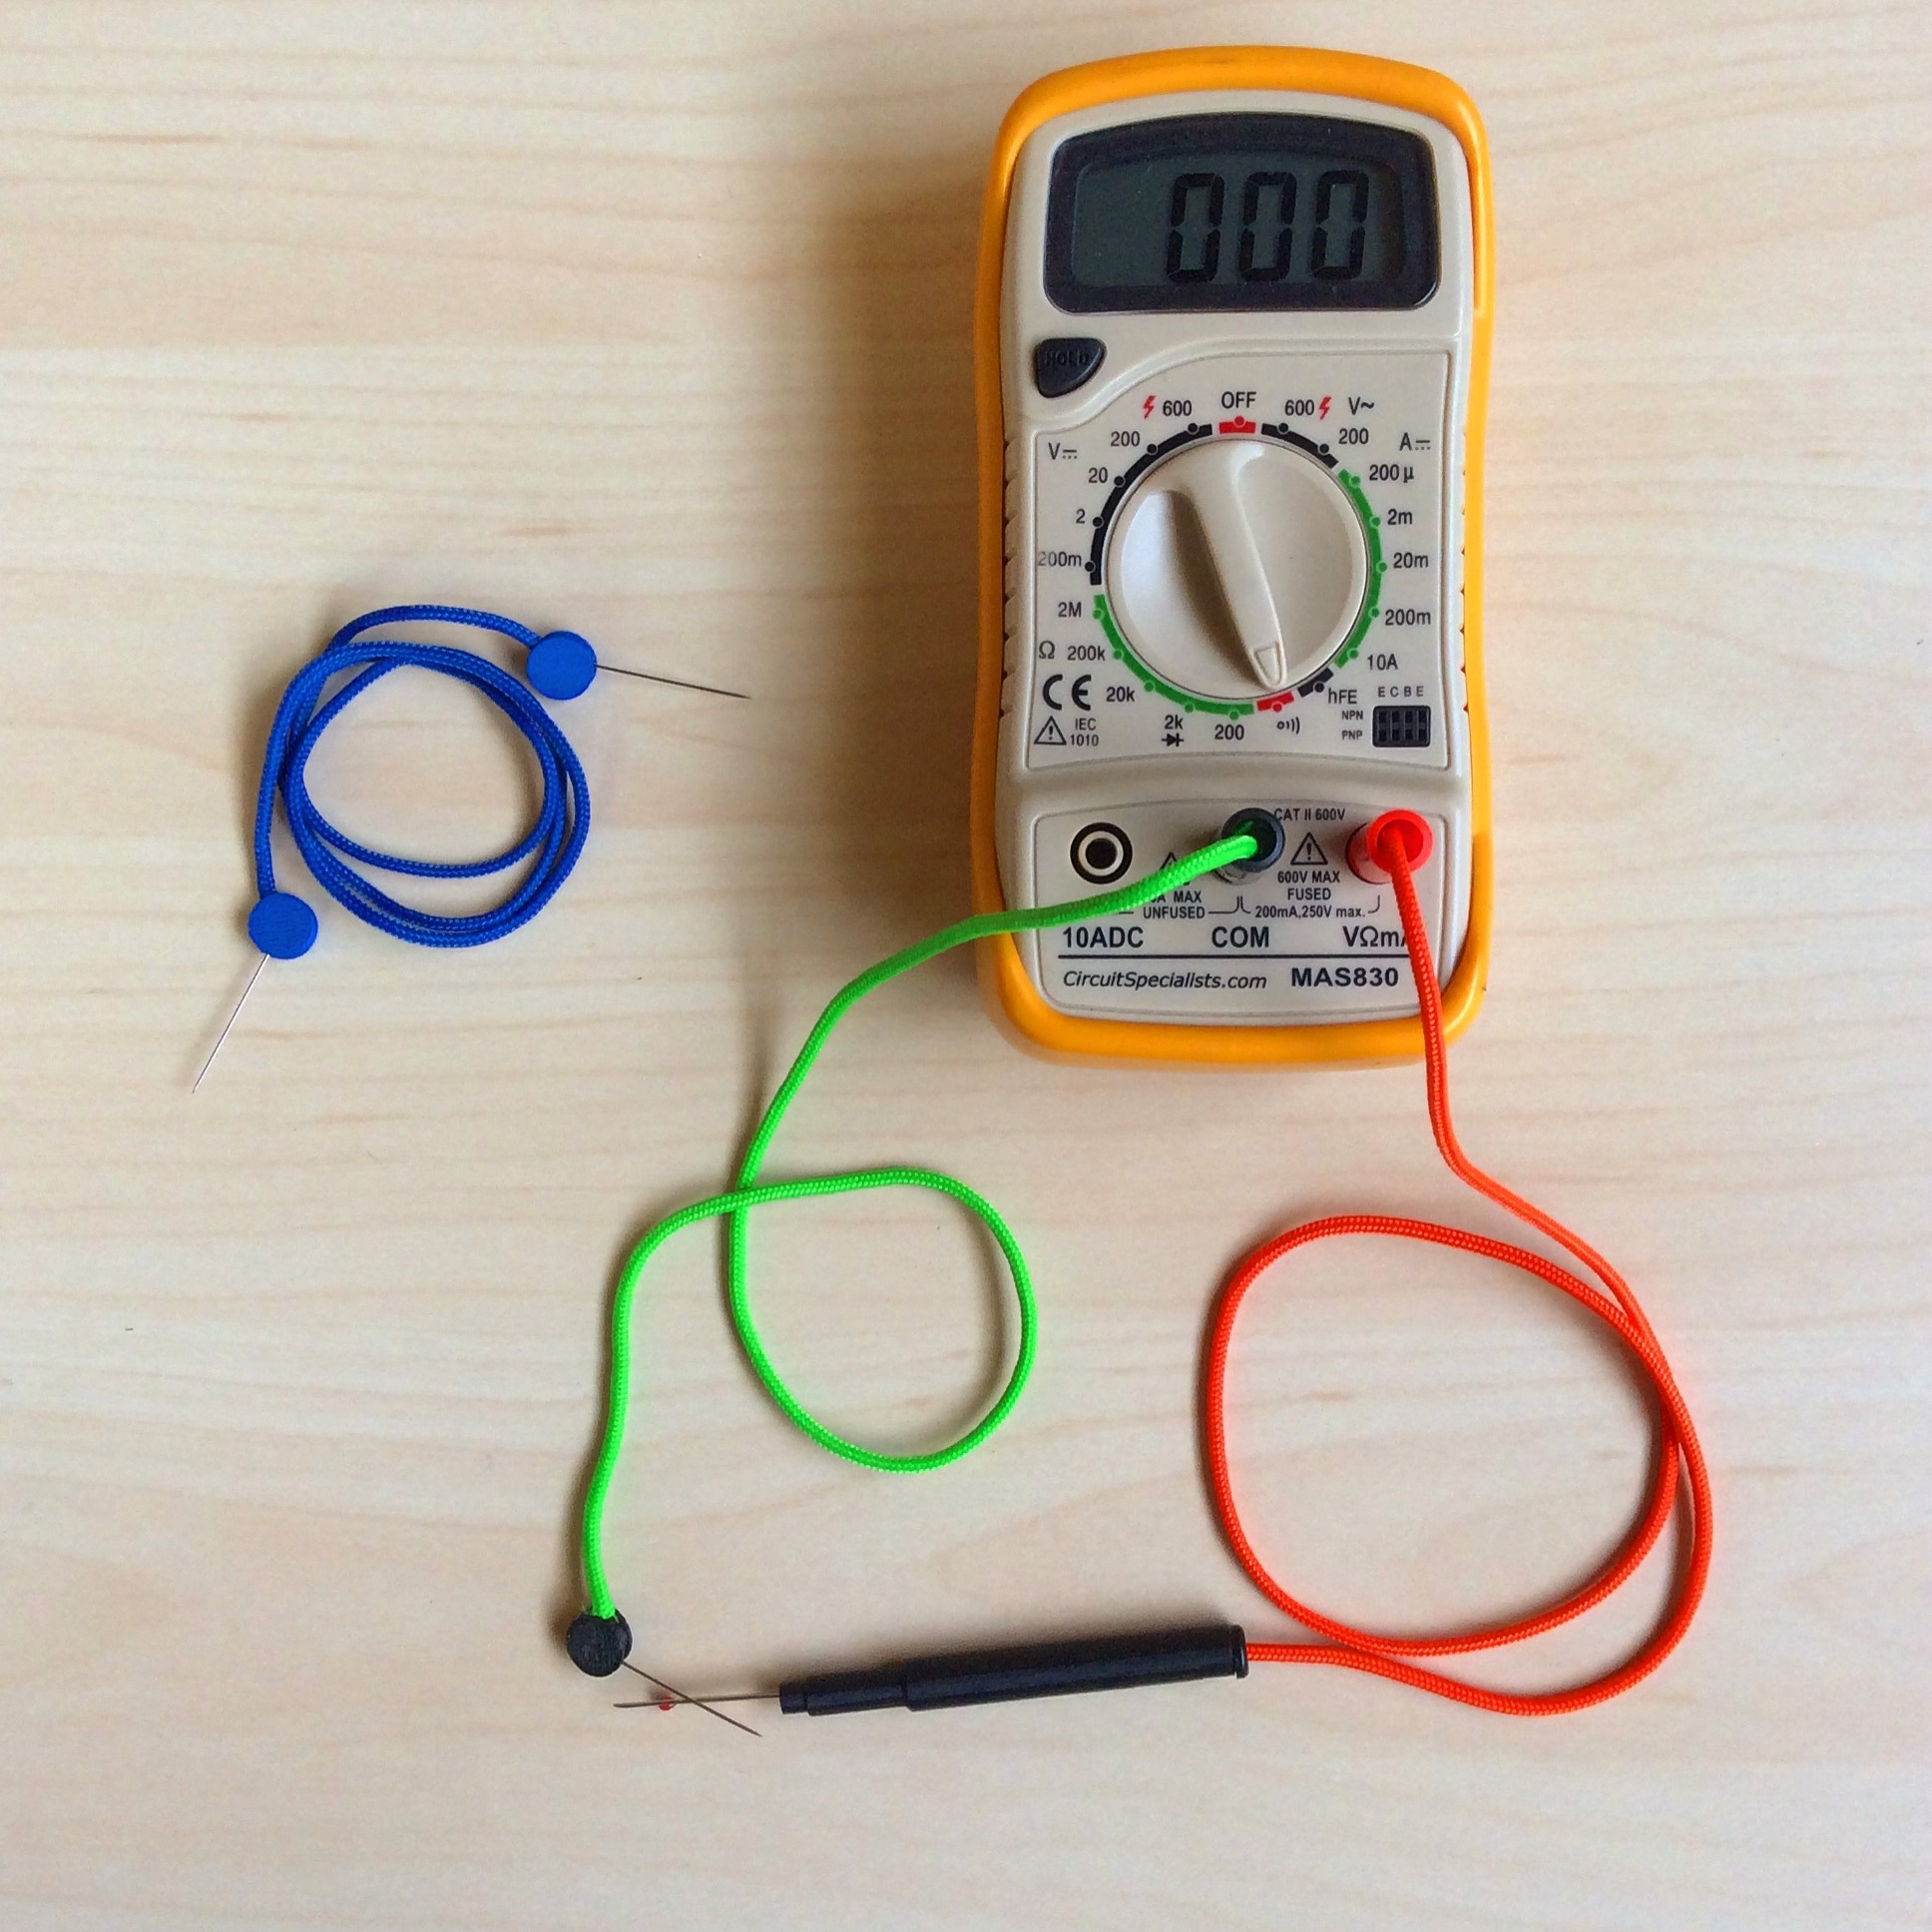 E-textile tools made at Irene's workshop: blue pin probes (to replace alligator clips), green multimeter pin probe and orange multimeter seam ripper probe for testing.